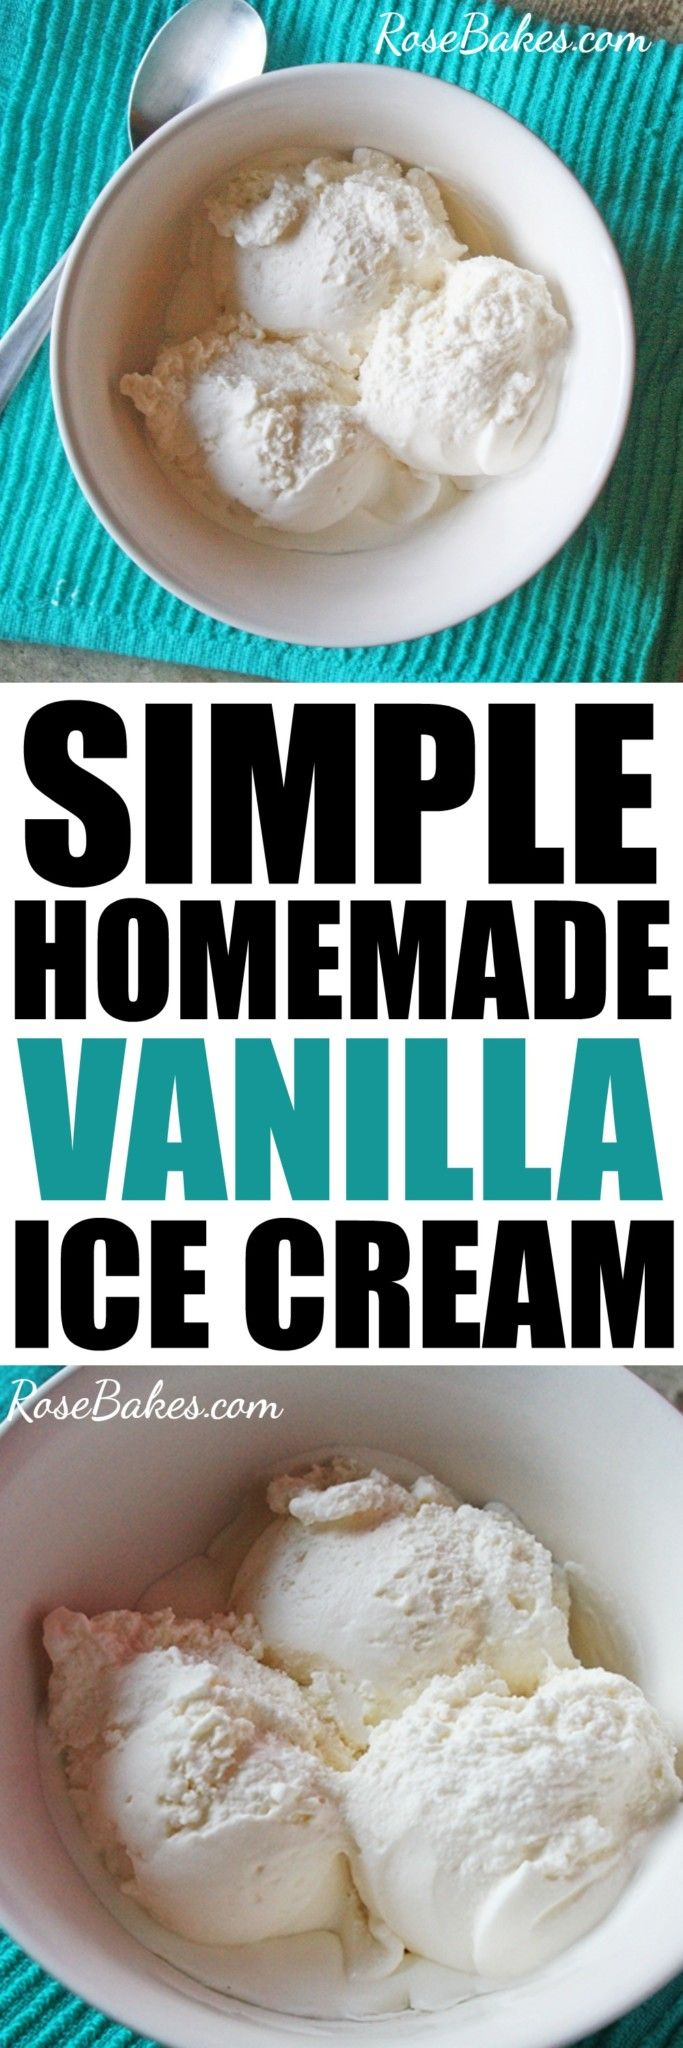 Simple Eggless Homemade Vanilla Ice Cream by RoseBakes